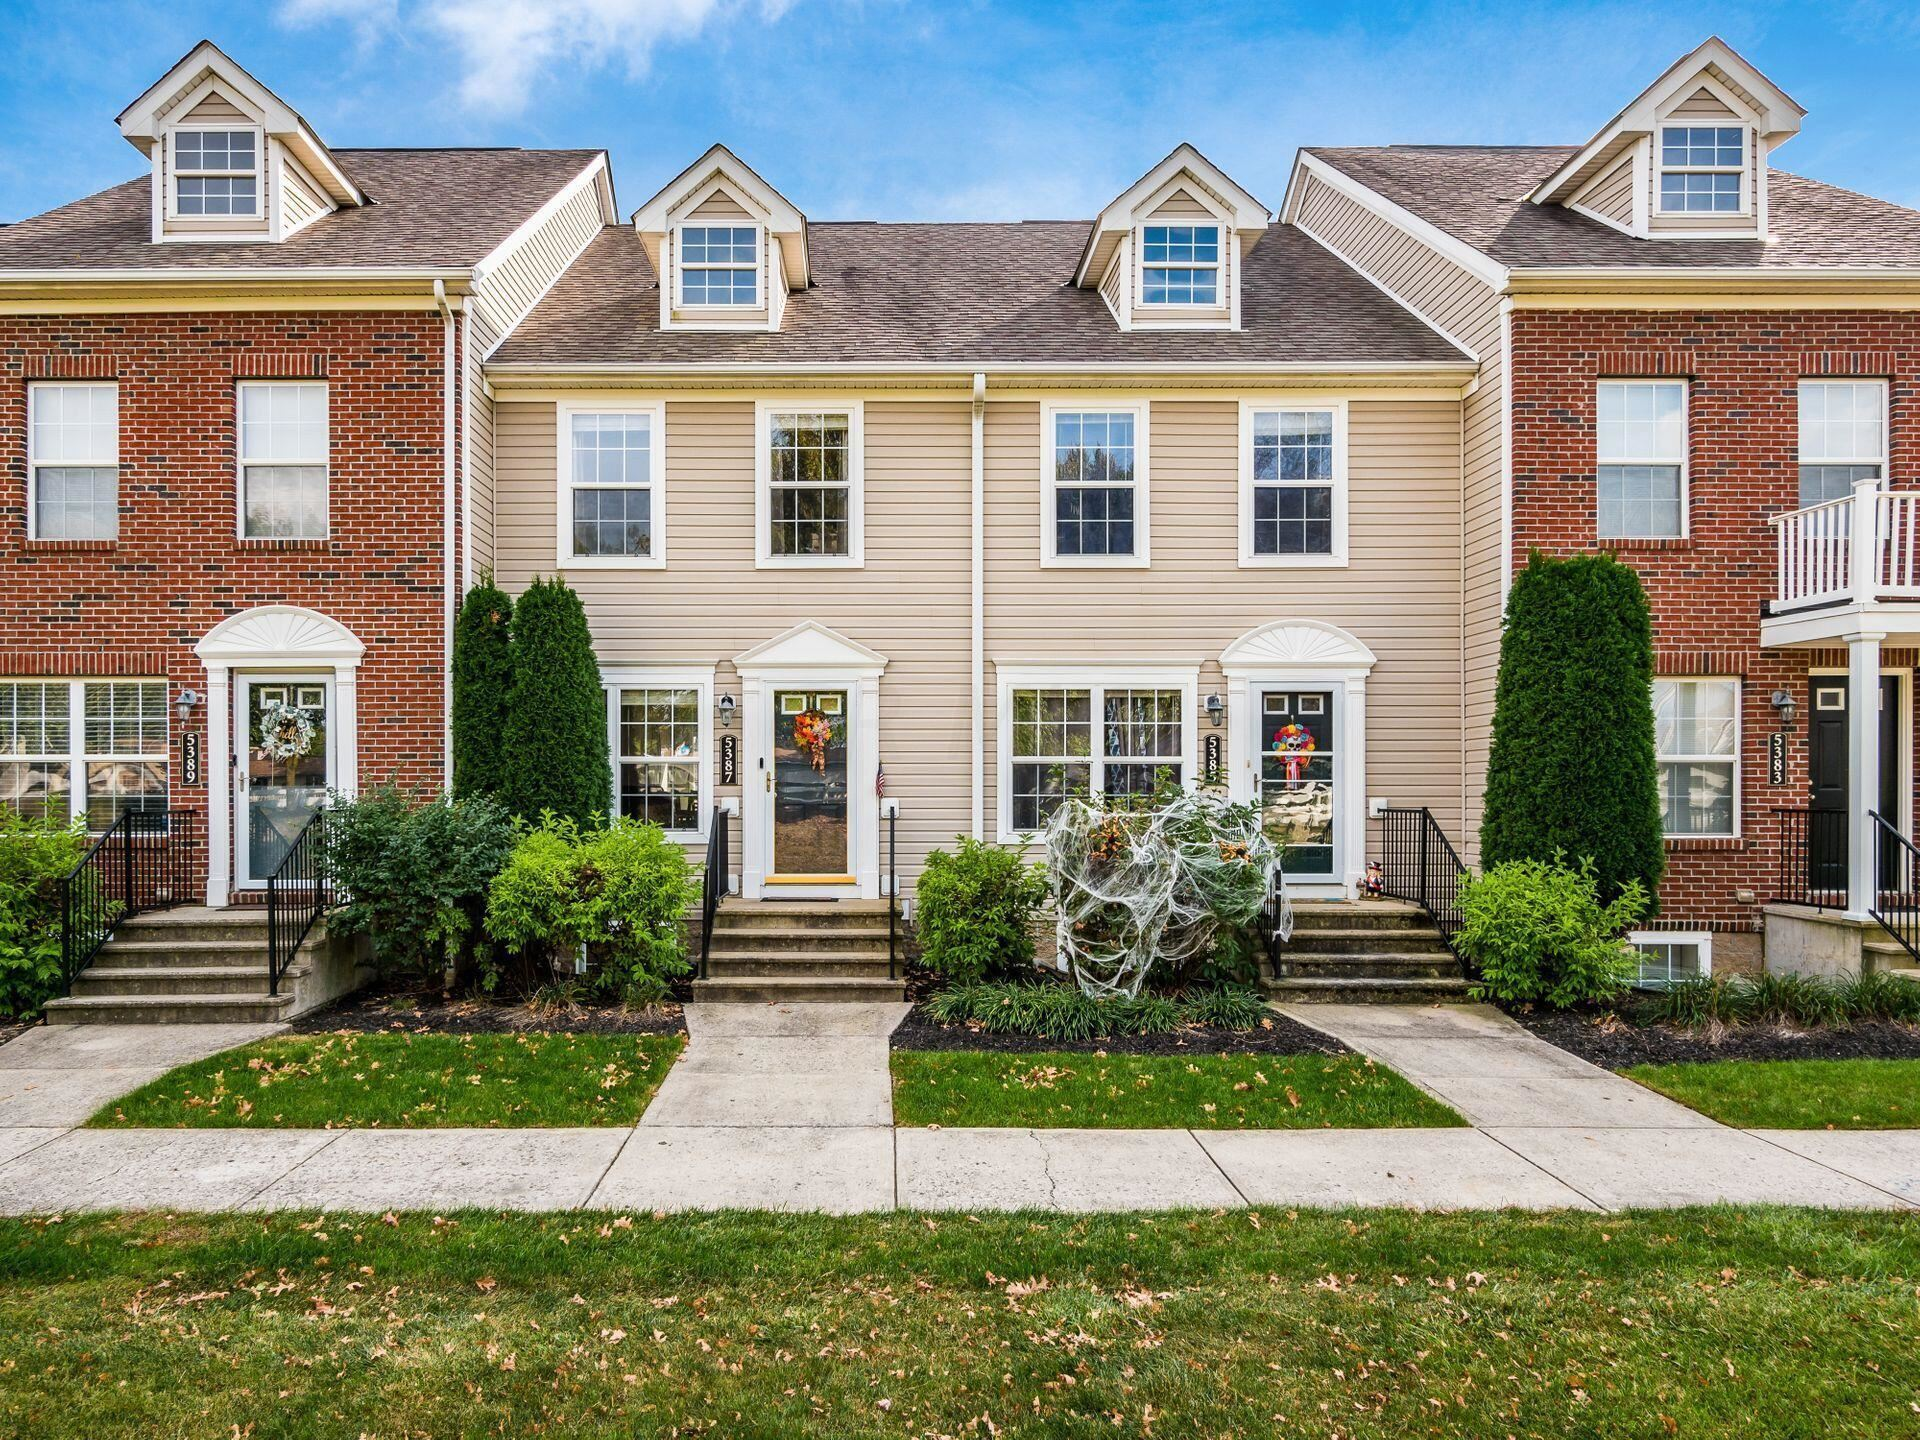 Photo of 5387 Central College Road, Westerville, OH 43081 (MLS # 221040952)